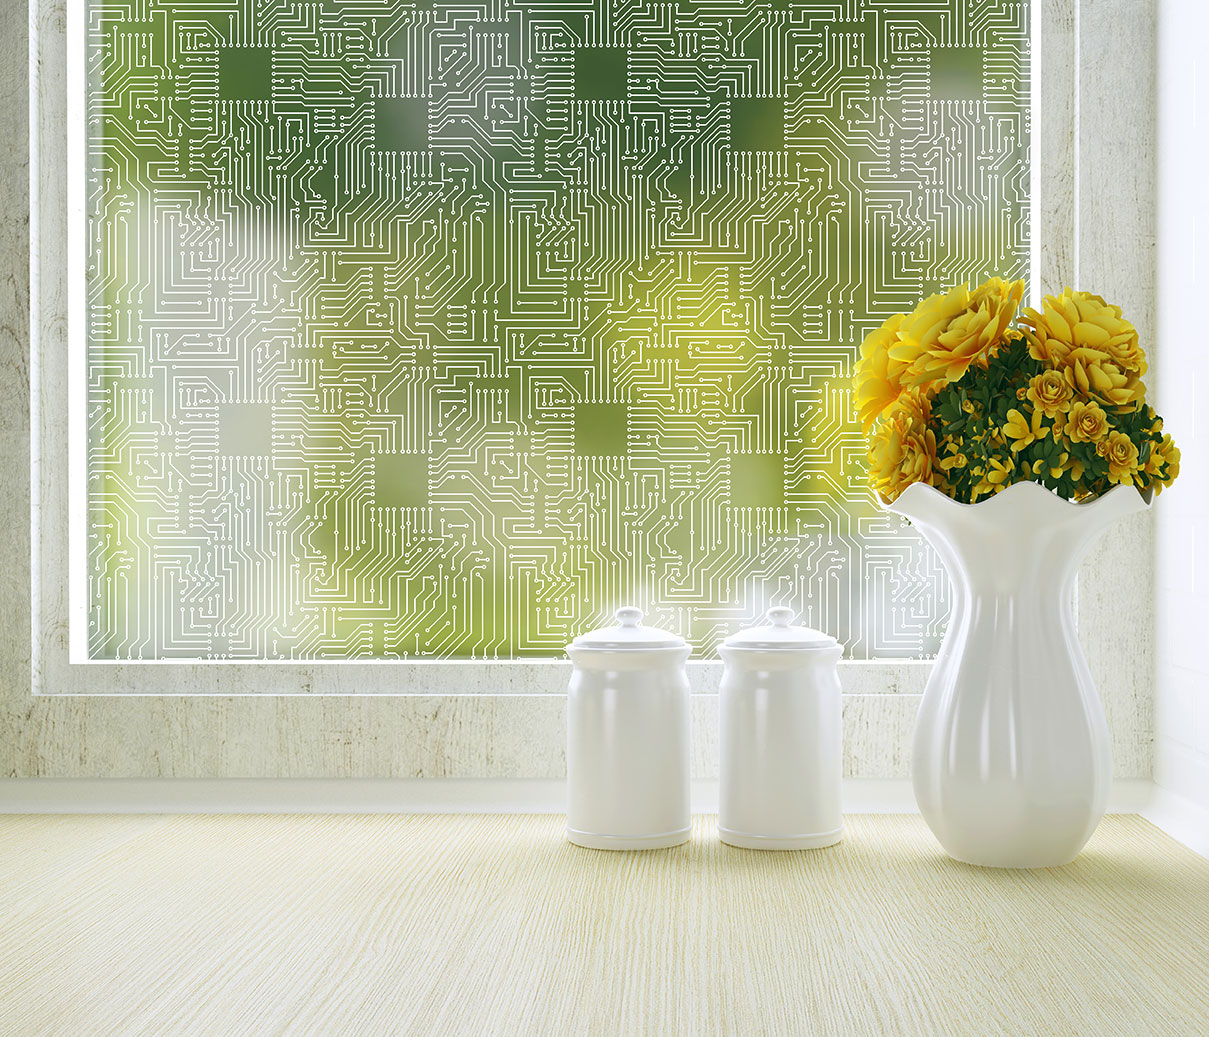 Translucent Window Film Short Circuit Privacy Window Film For Office Or Home Window